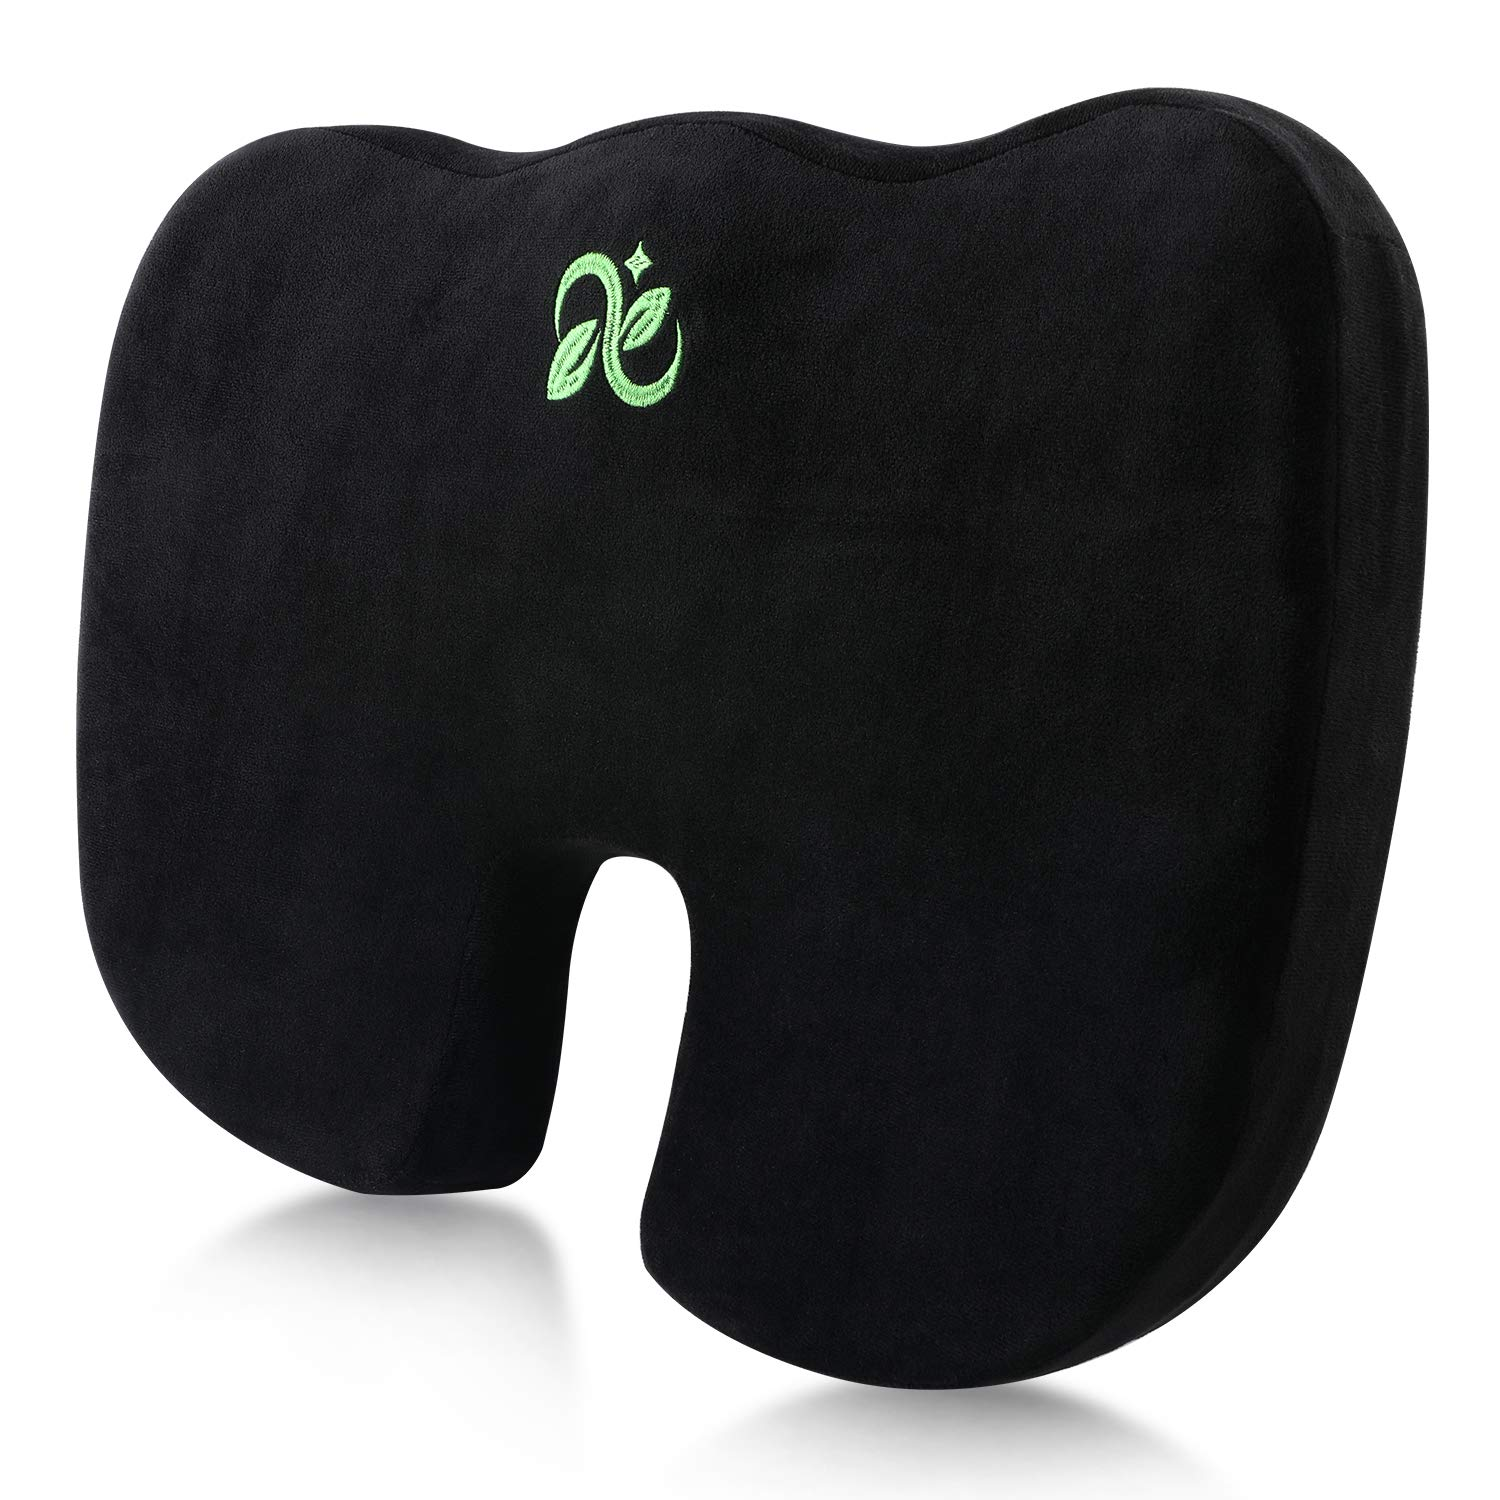 Coccyx Seat Cushion Comfort Memory Foam Seat Cushion Orthopedic Chair Pillow Back Pain Relief Sciatica Tailbone Pain Back Support Seat Cushion Office Car Sitting Pregnancy Travel Driving Seat Cushion.